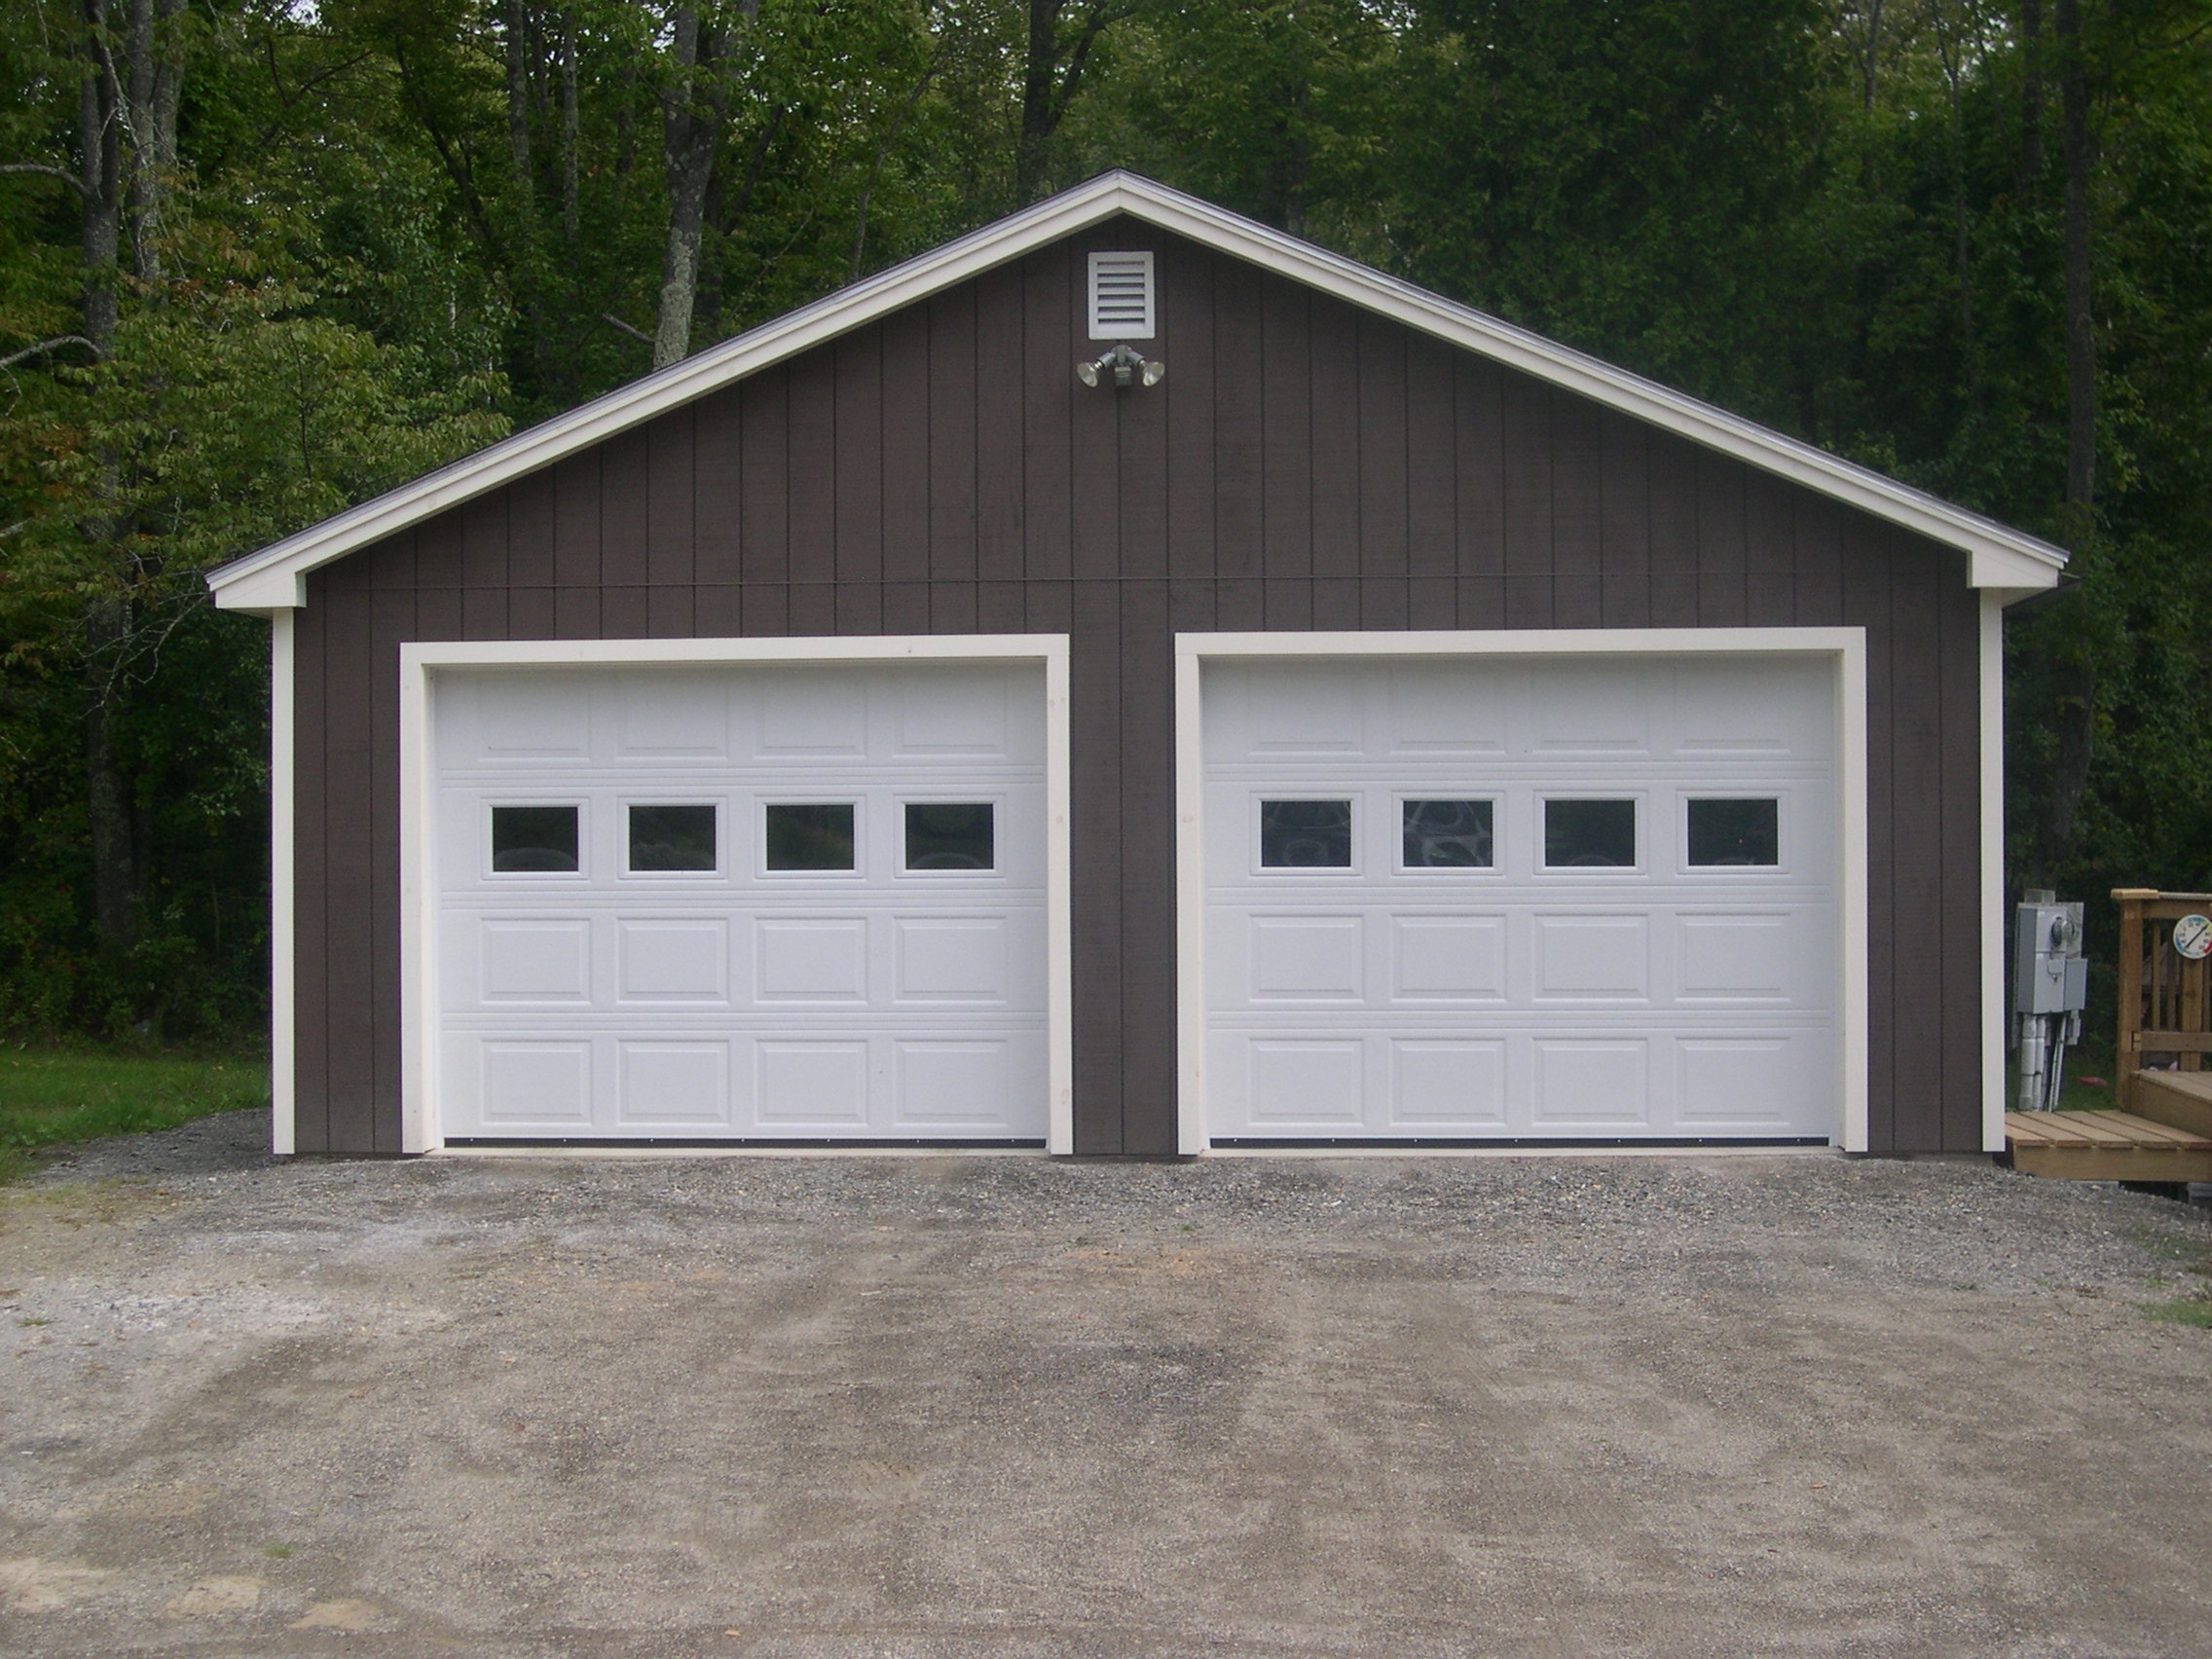 How much to build a garage on side of the house uk for Diy garage cost